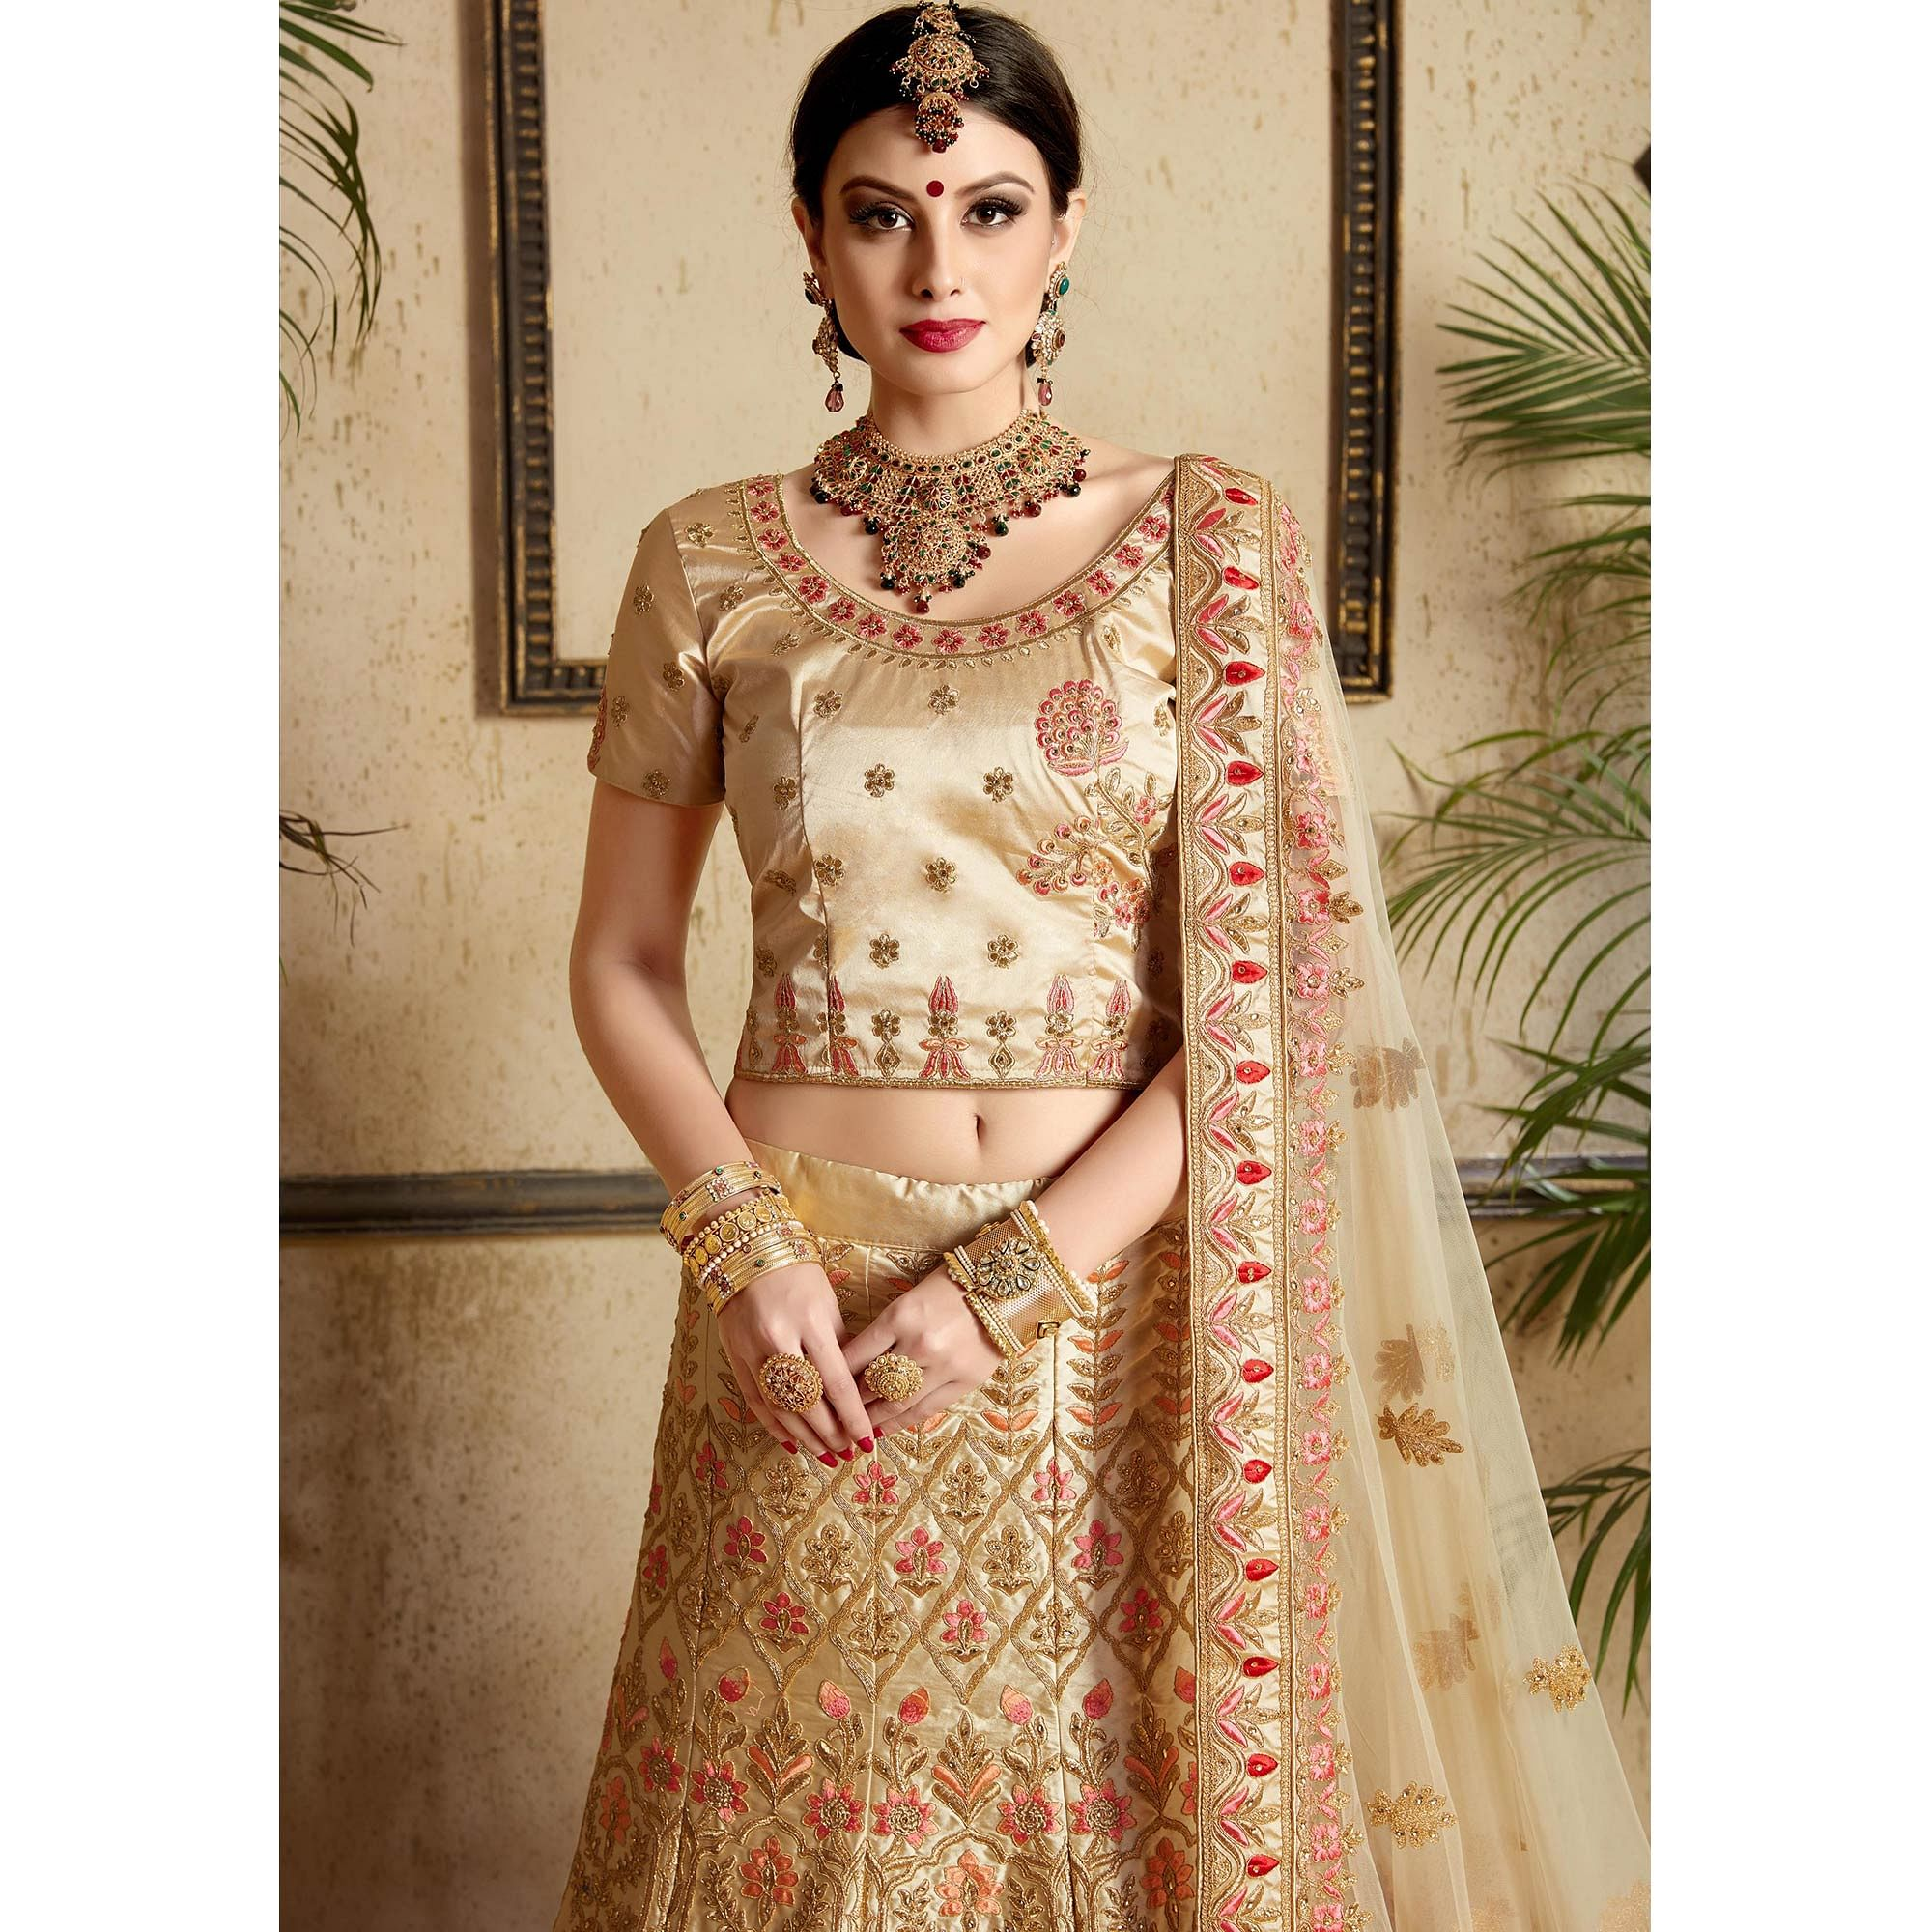 Captivating Beige Colored Wedding Wear Embroidered Satin Lehenga Choli